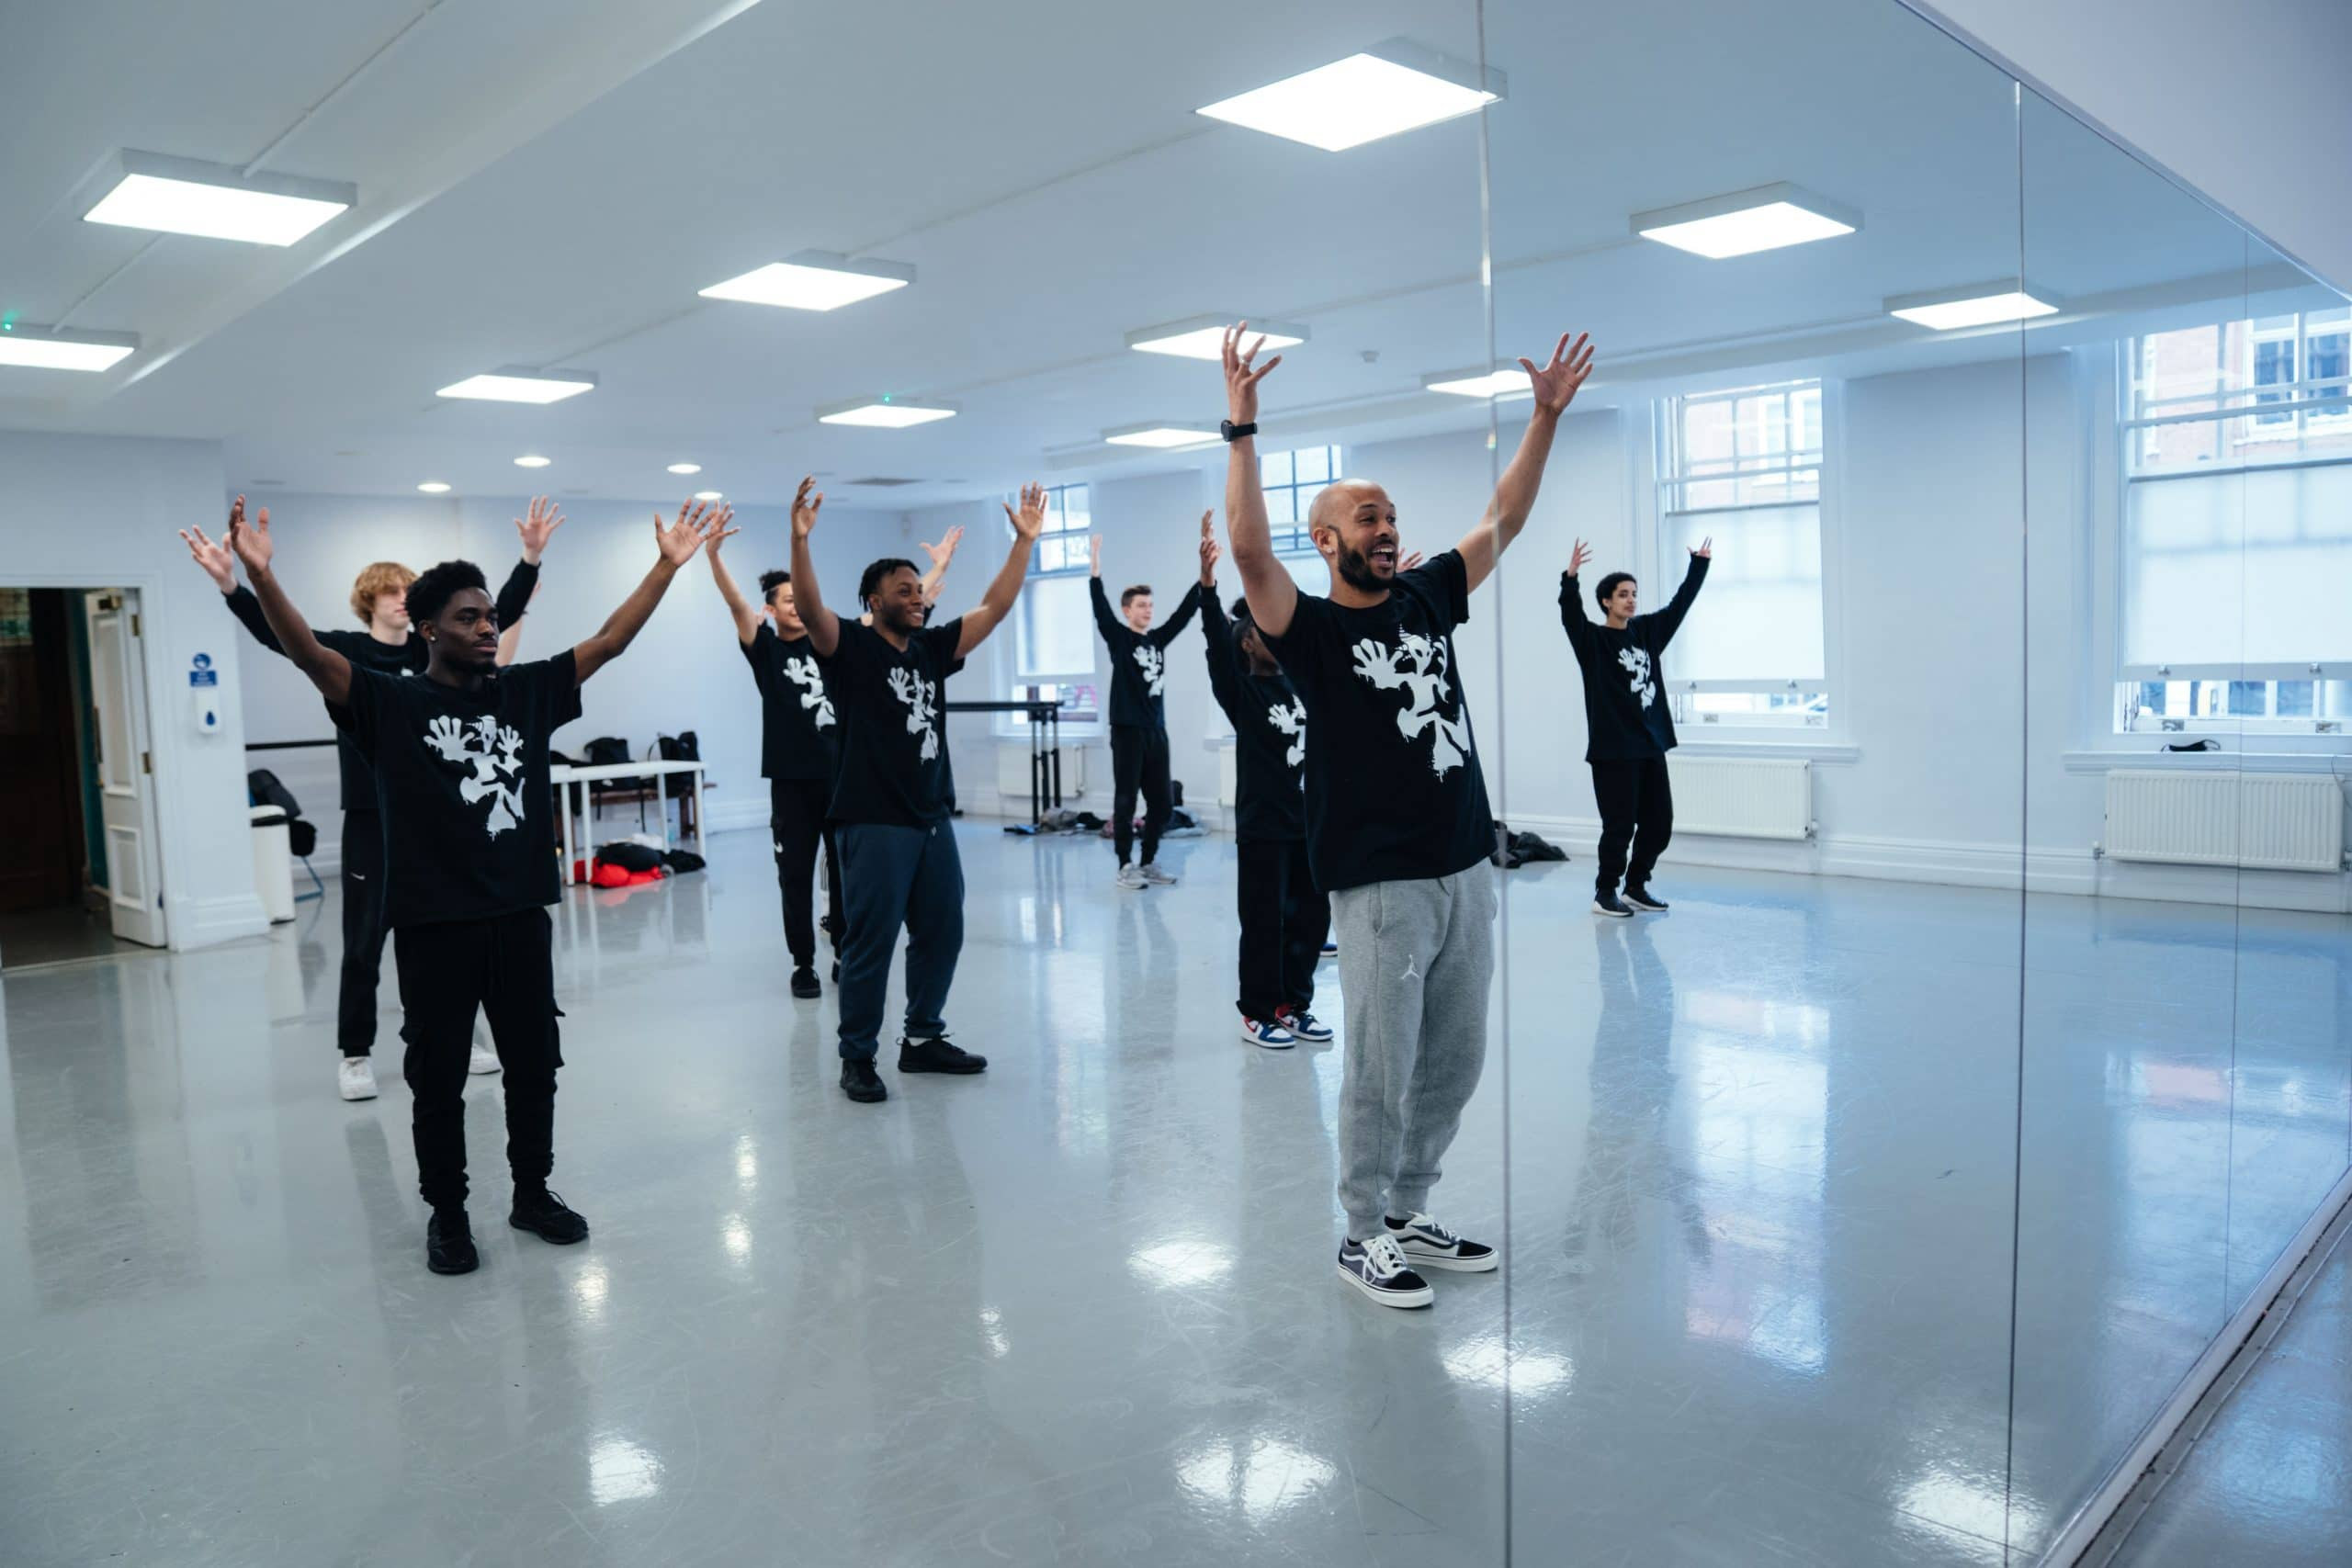 Bradley leads a group of young men in dnce in a studio. ZooNation Youth Company 2021 ; Rehearsals